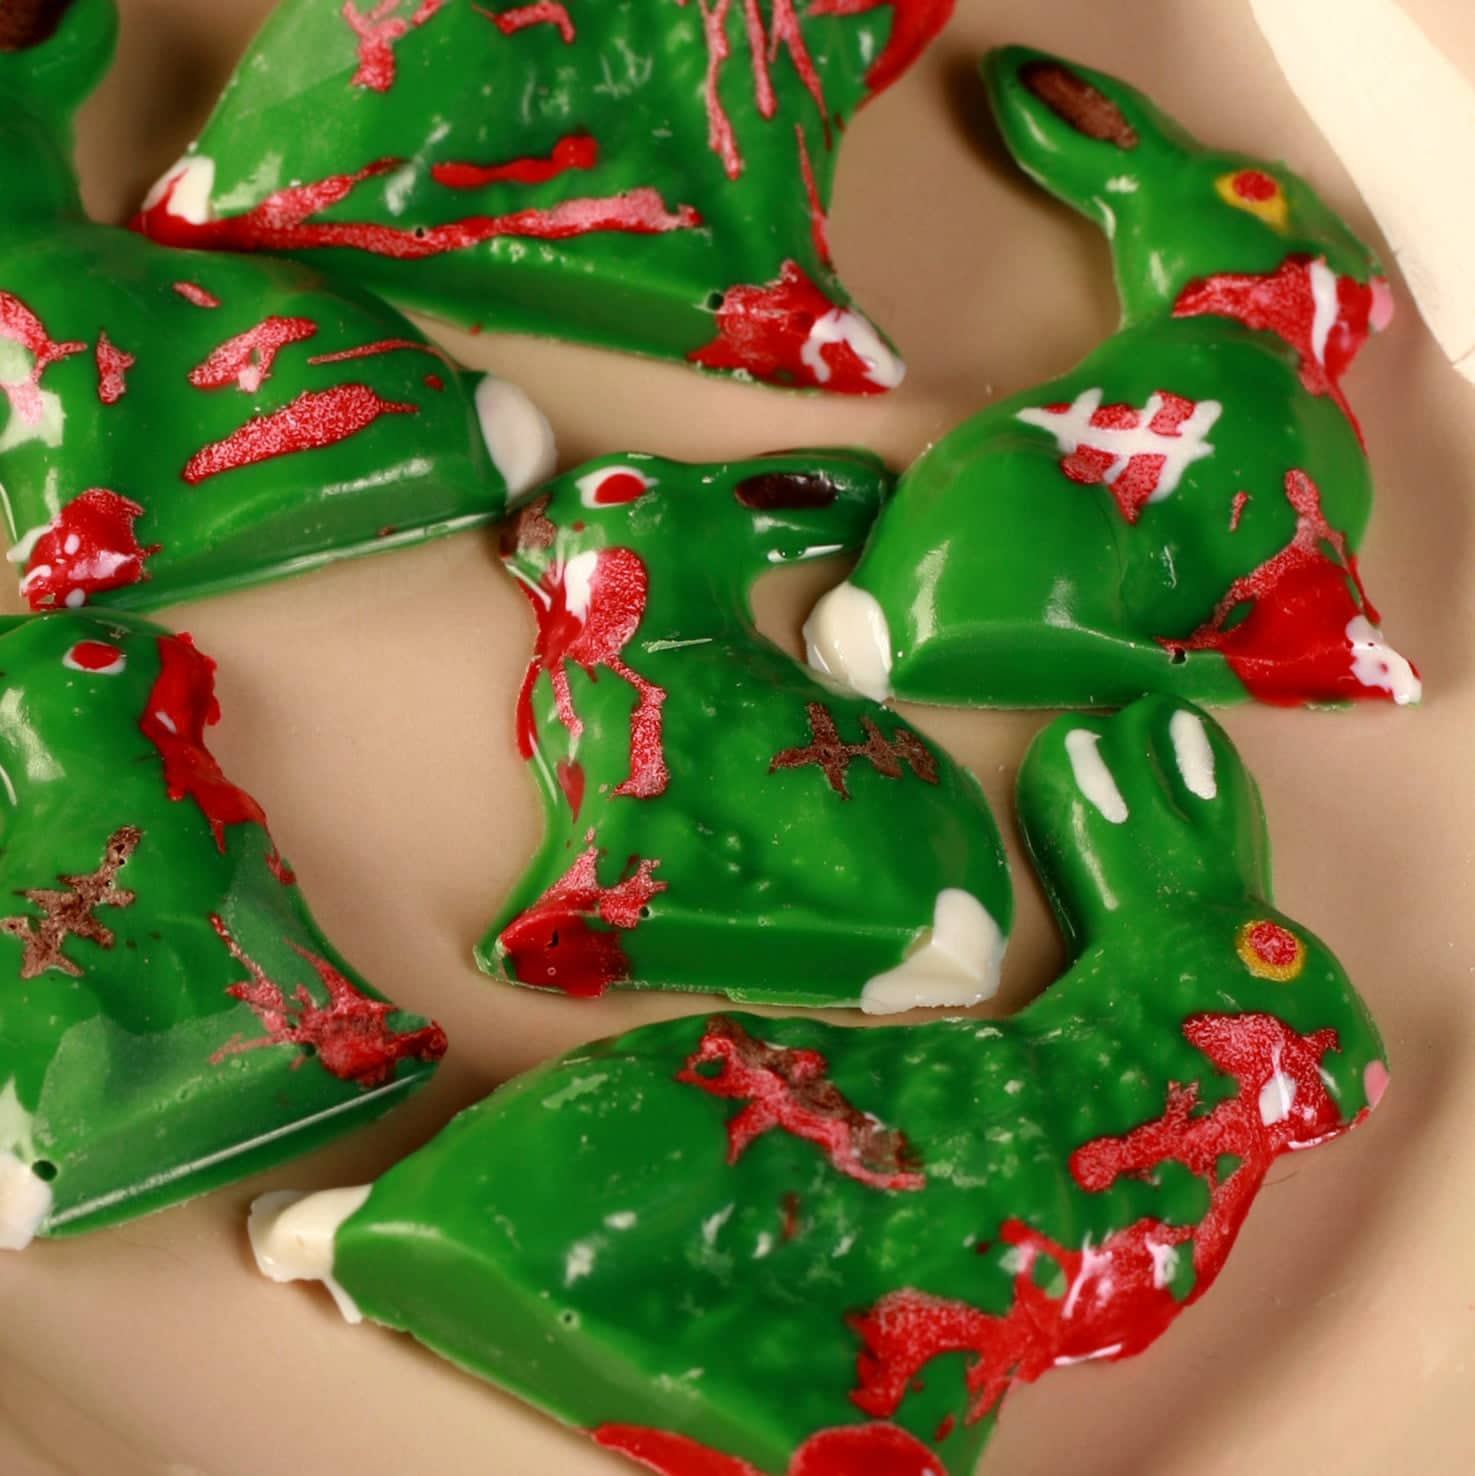 6 different Chocolate Zombie Easter Bunnies are arranged on a beige coloured oval plate. They're all green with red, white, and brown designs to make them look blood spattered, scarred, etc.